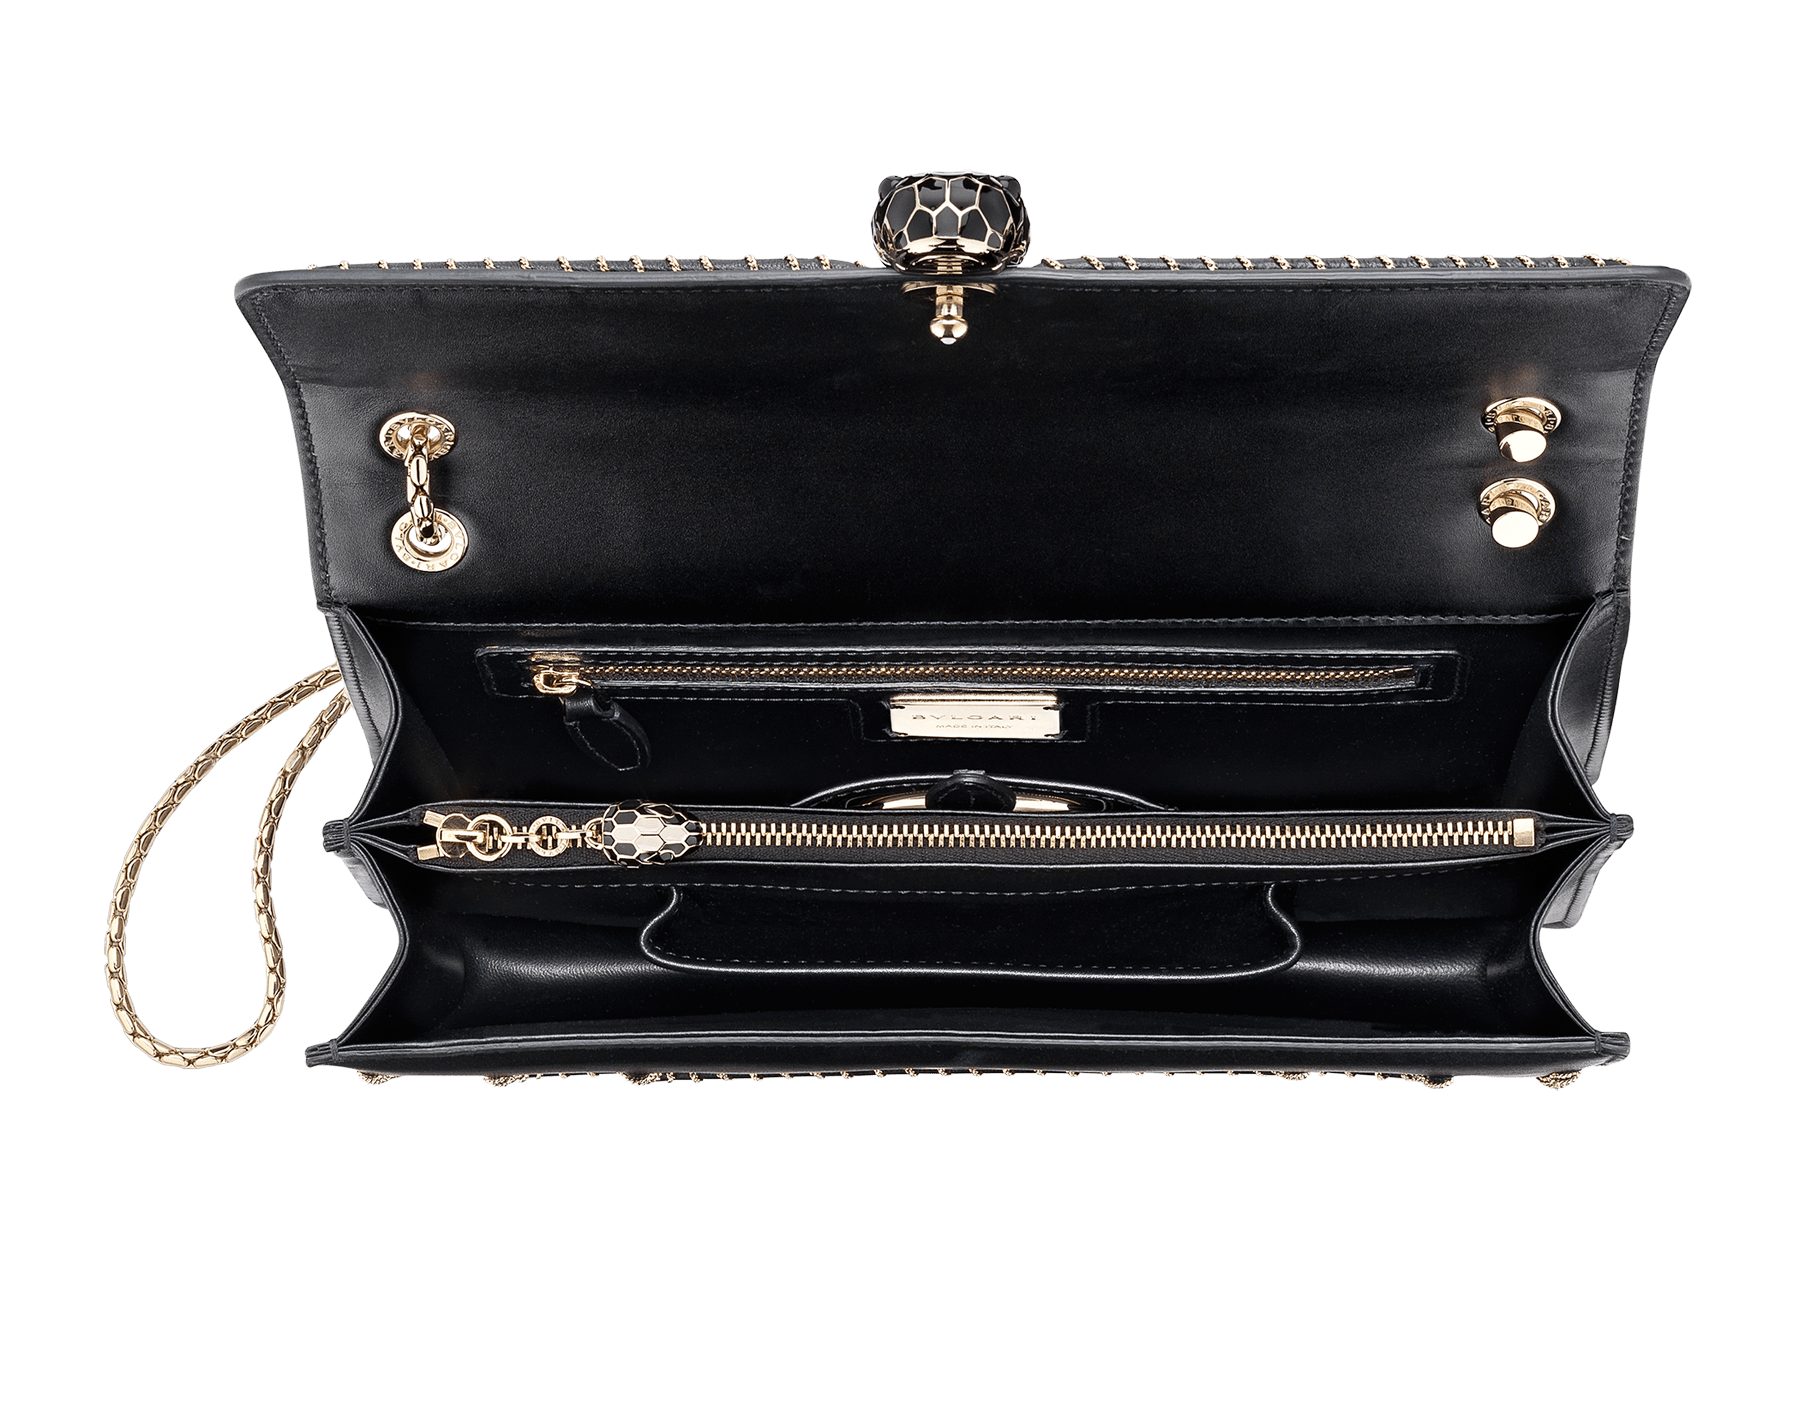 """Serpenti Forever"" shoulder bag in black calf leather, featuring a Woven Chain motif. Iconic snakehead closure in light gold plated brass enriched with black enamel and black onyx eyes 521-WC image 4"